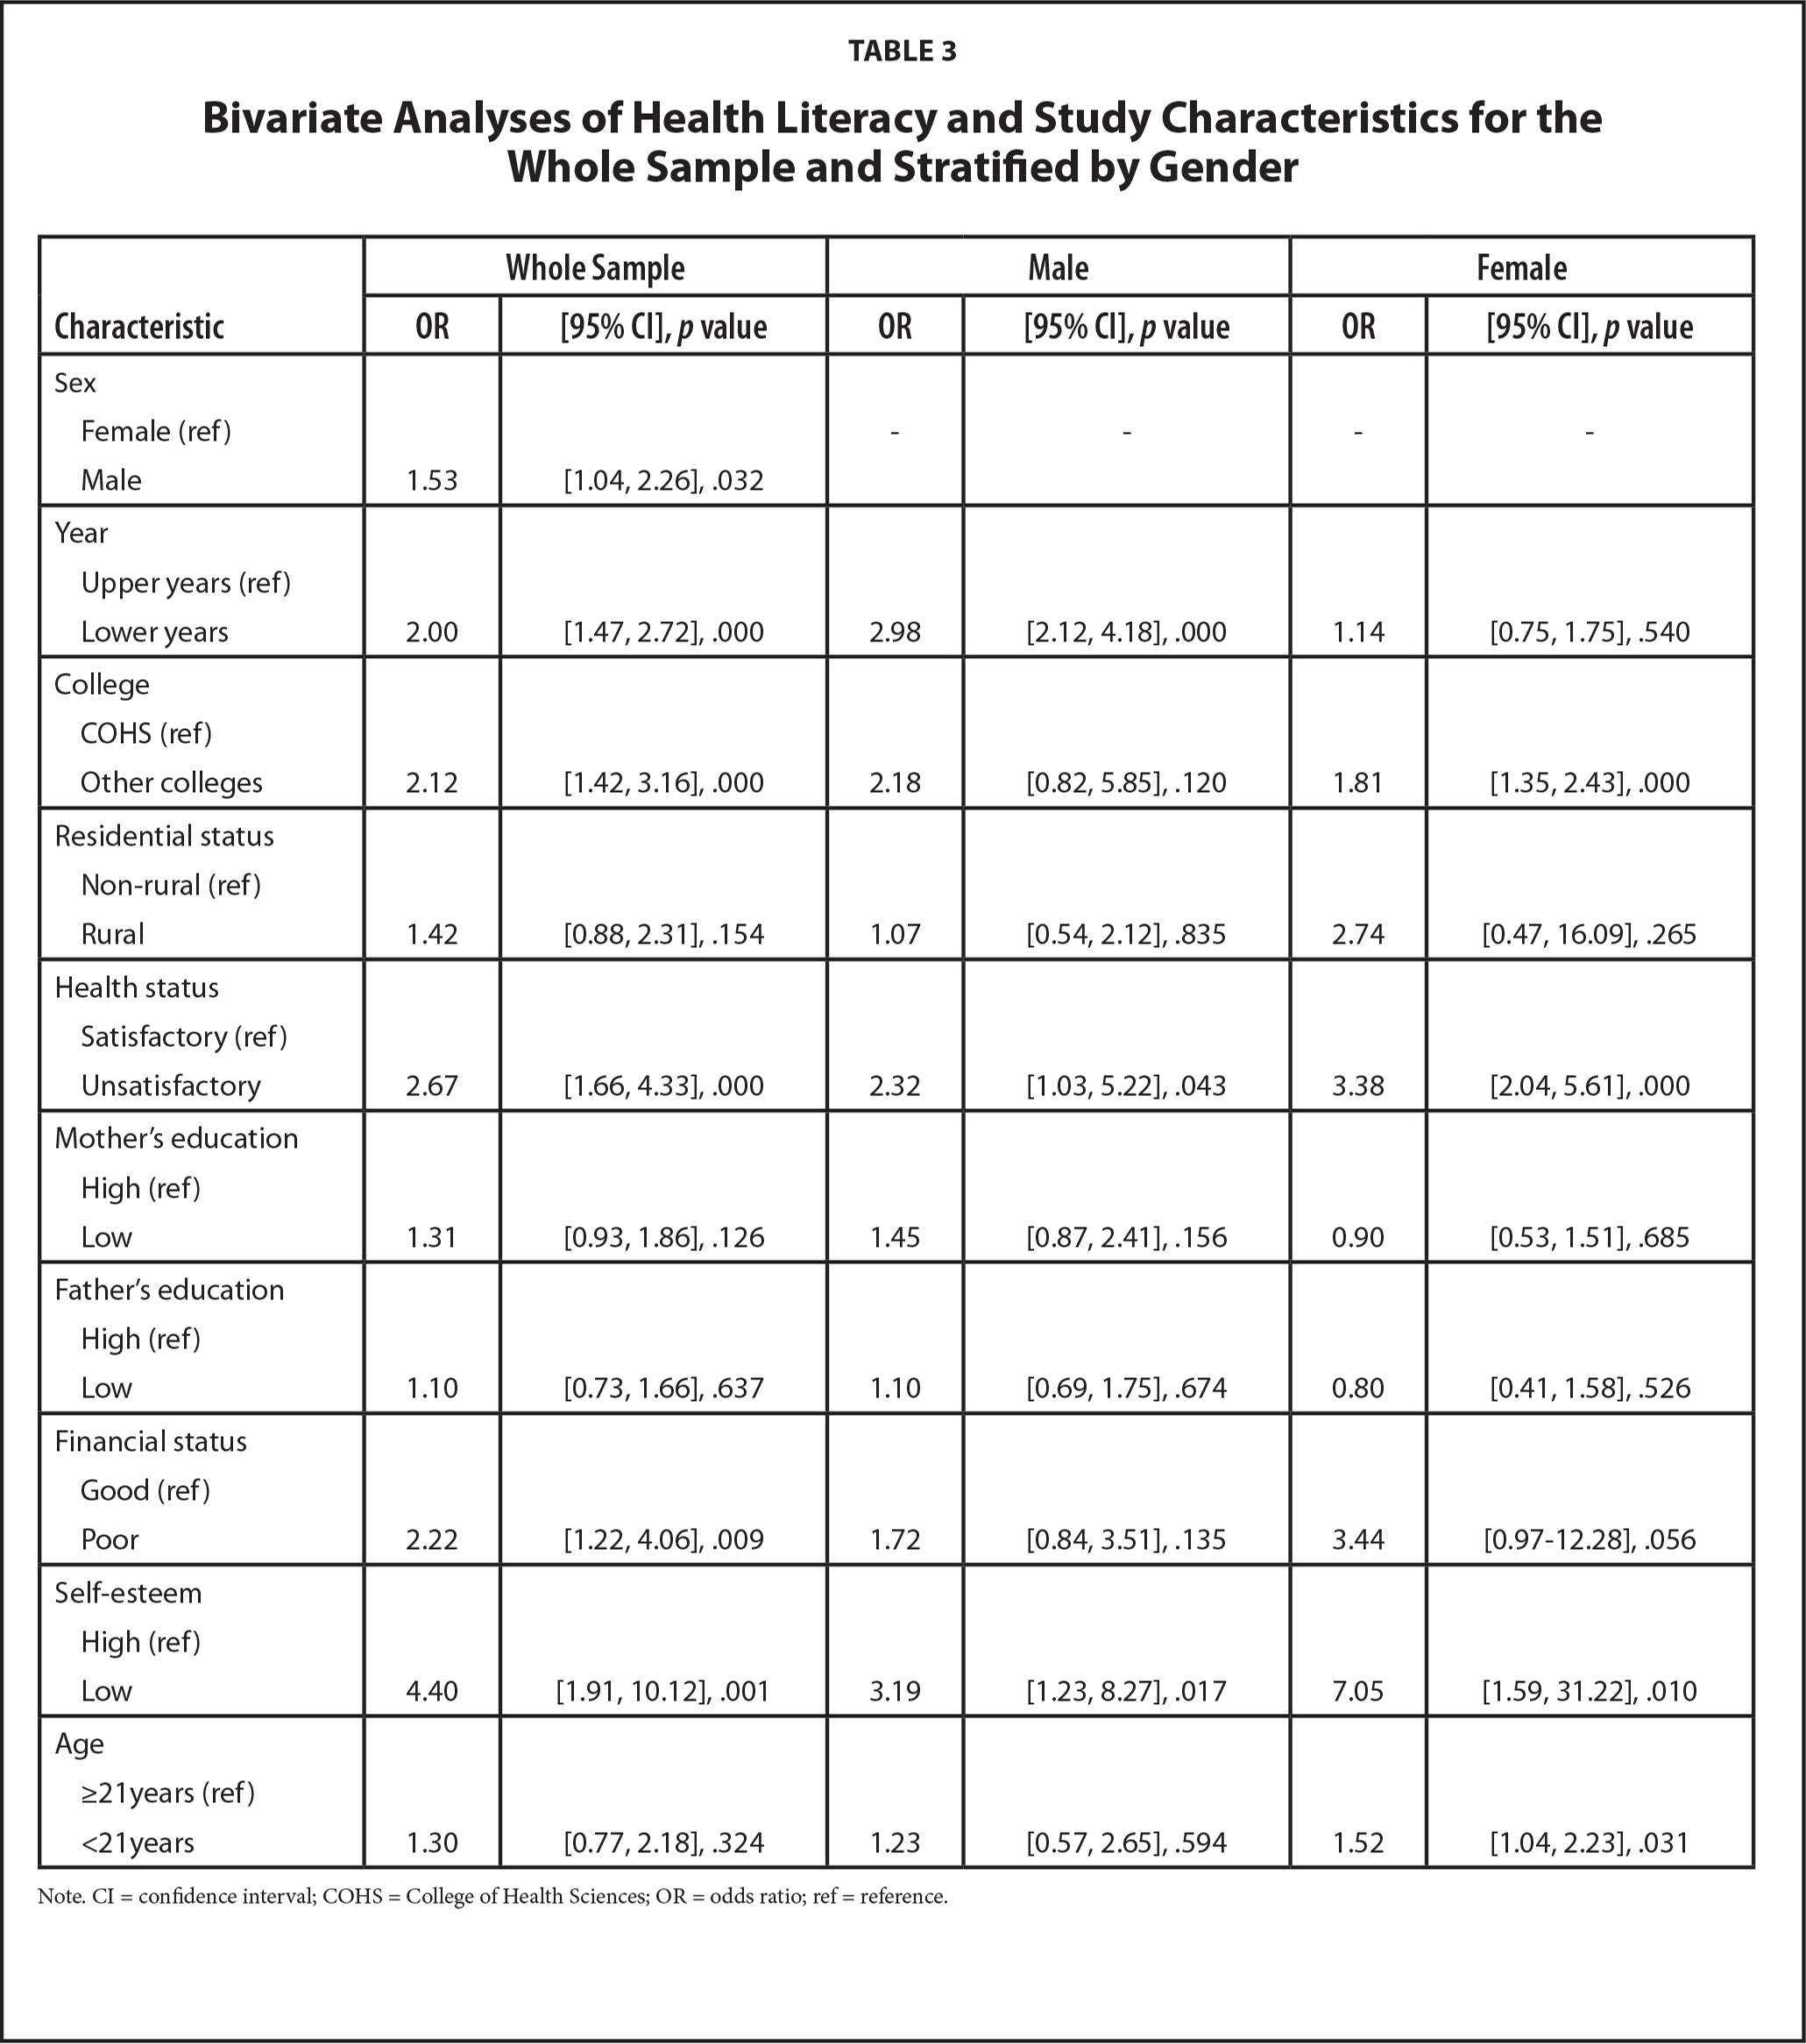 Bivariate Analyses of Health Literacy and Study Characteristics for the Whole Sample and Stratified by Gender